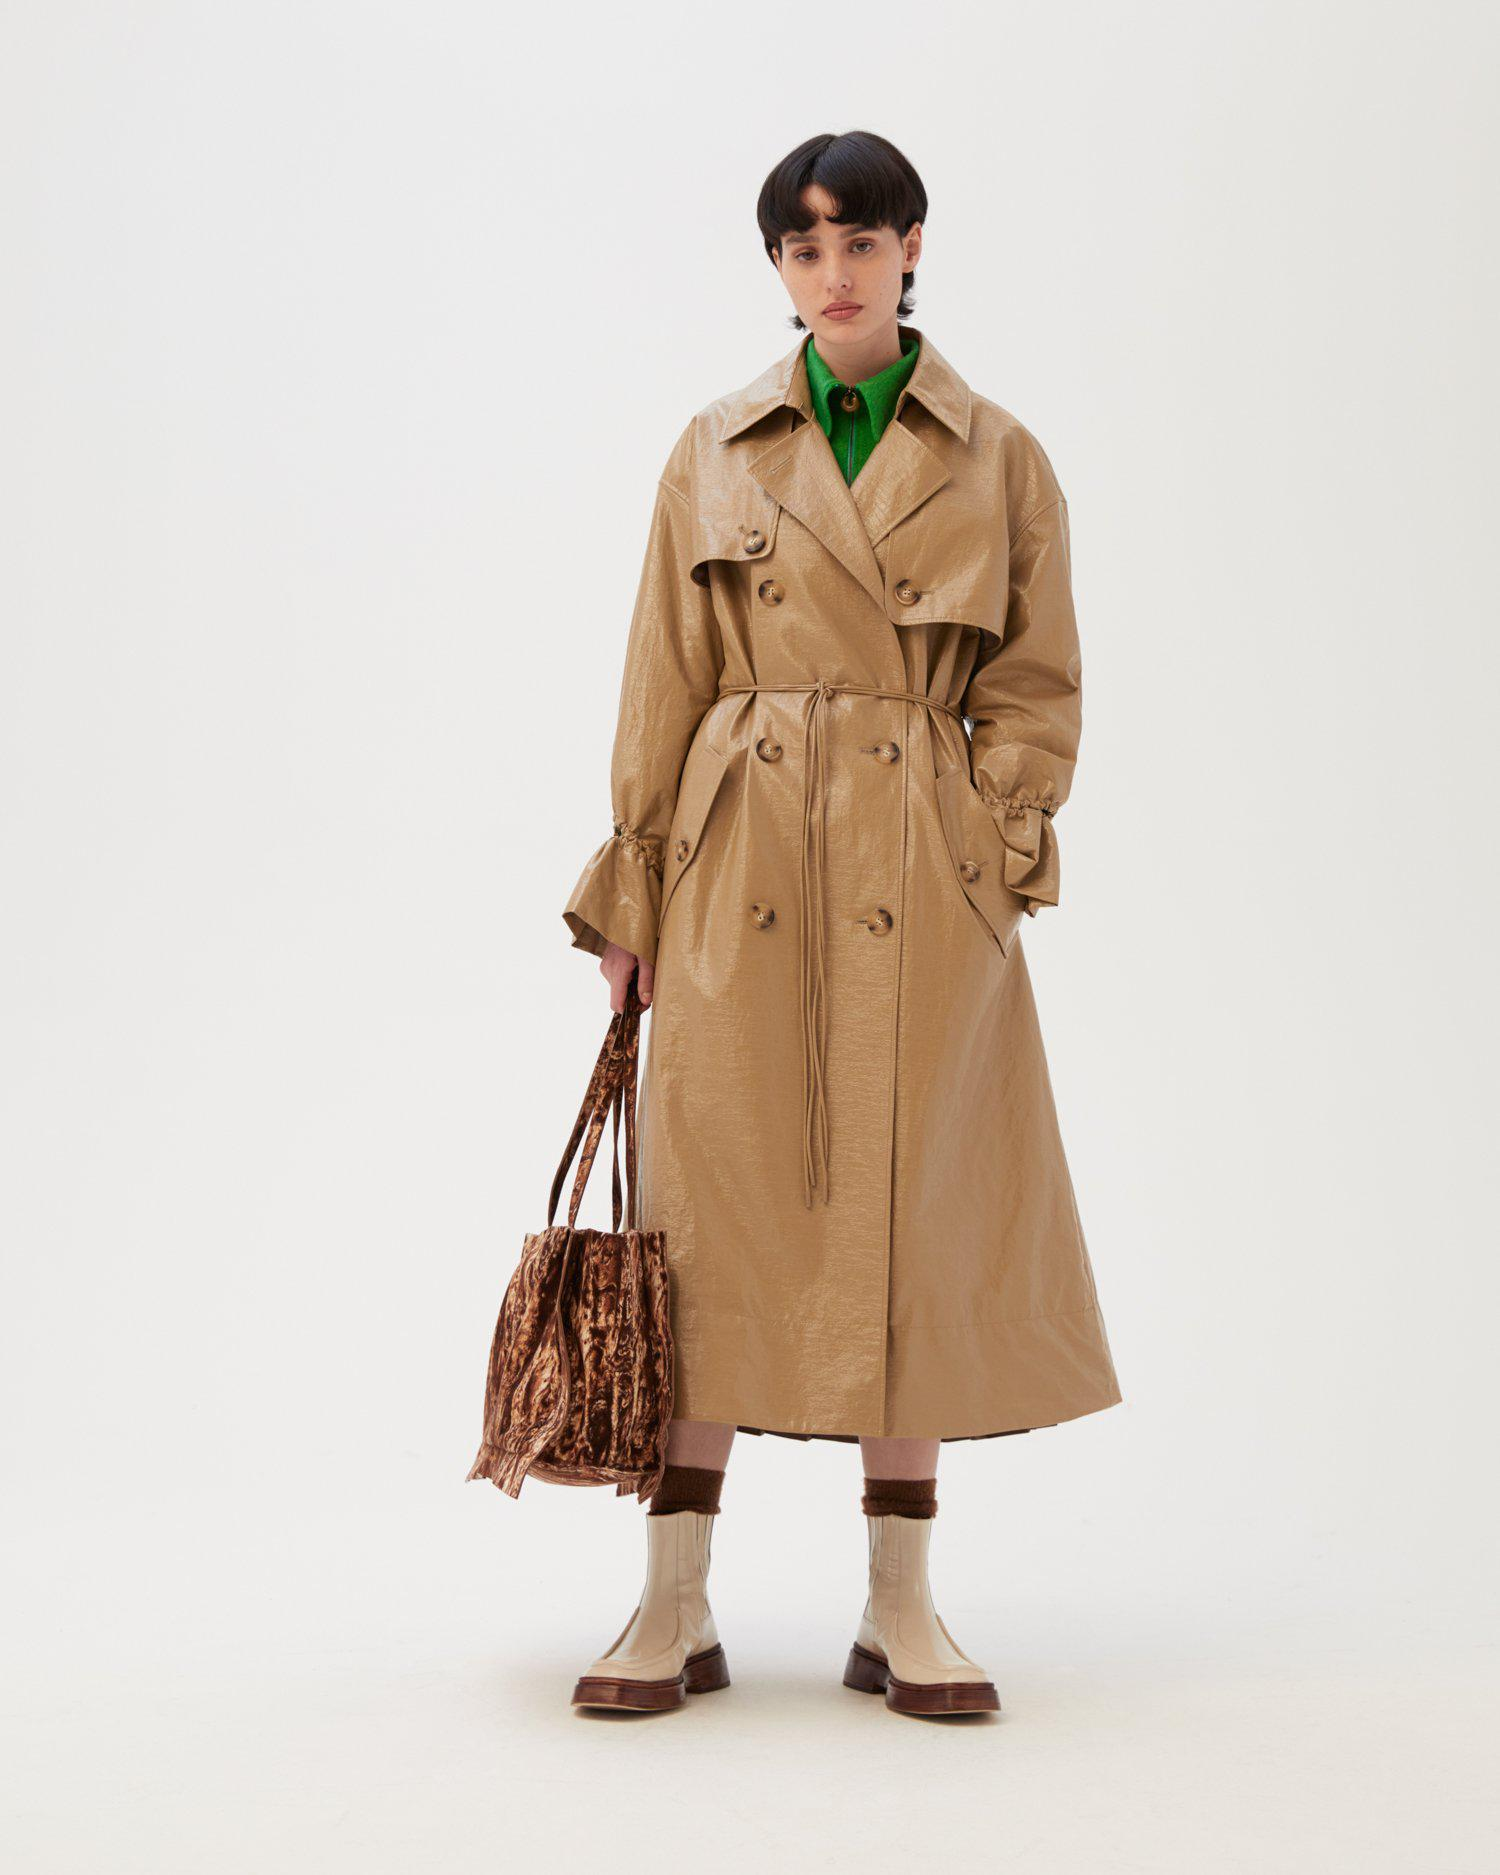 Naoko Trenchcoat Patent Faux Leather Sand